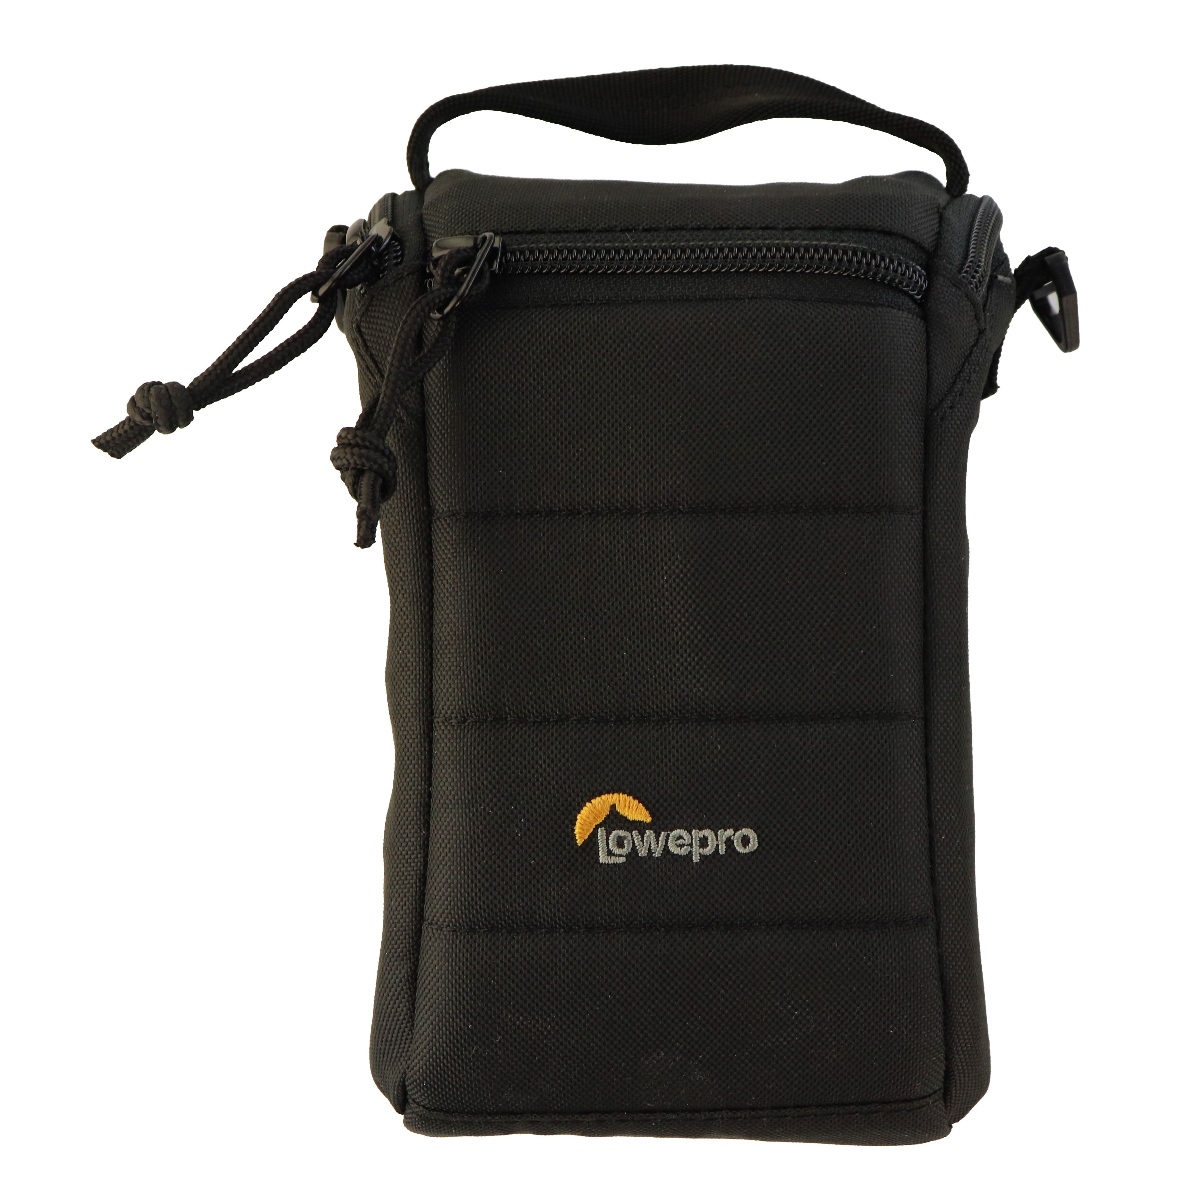 Lowepro Format 110 Carrying Case for Action and Video Cameras - Black